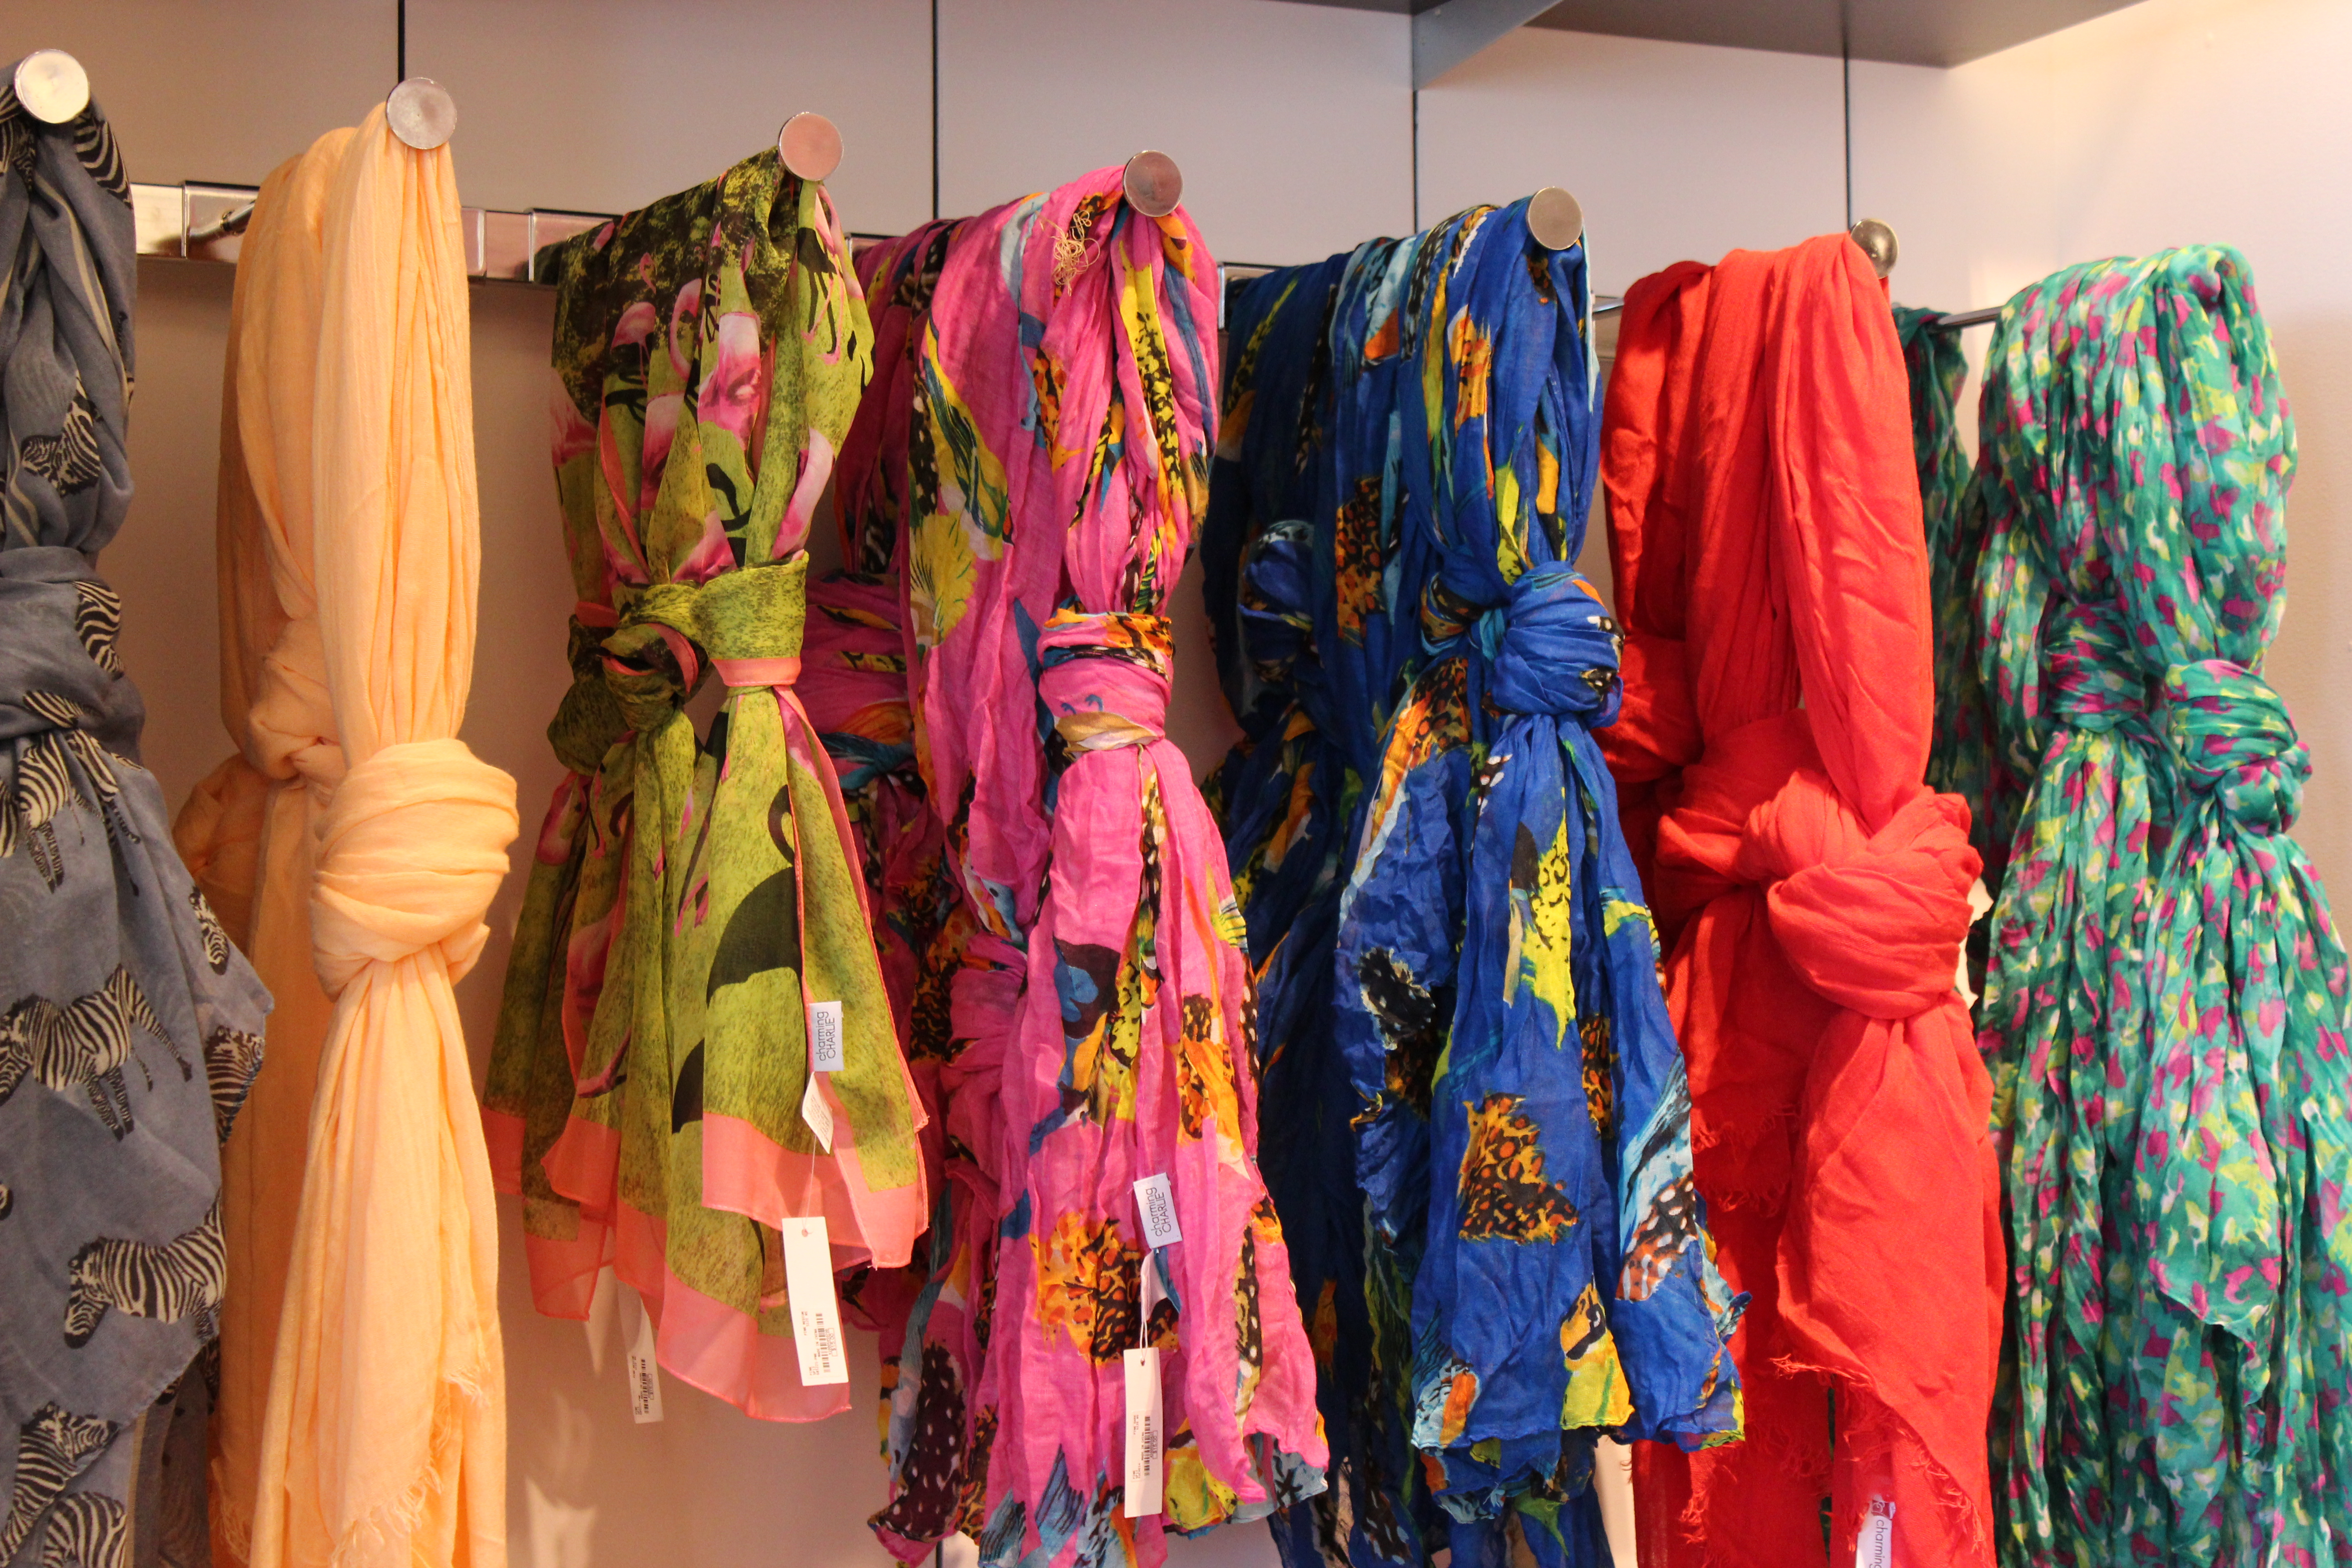 Get a FREE $5 Charming Charlie Voucher to Spend In-Store During Your Birthday Month - scarves display